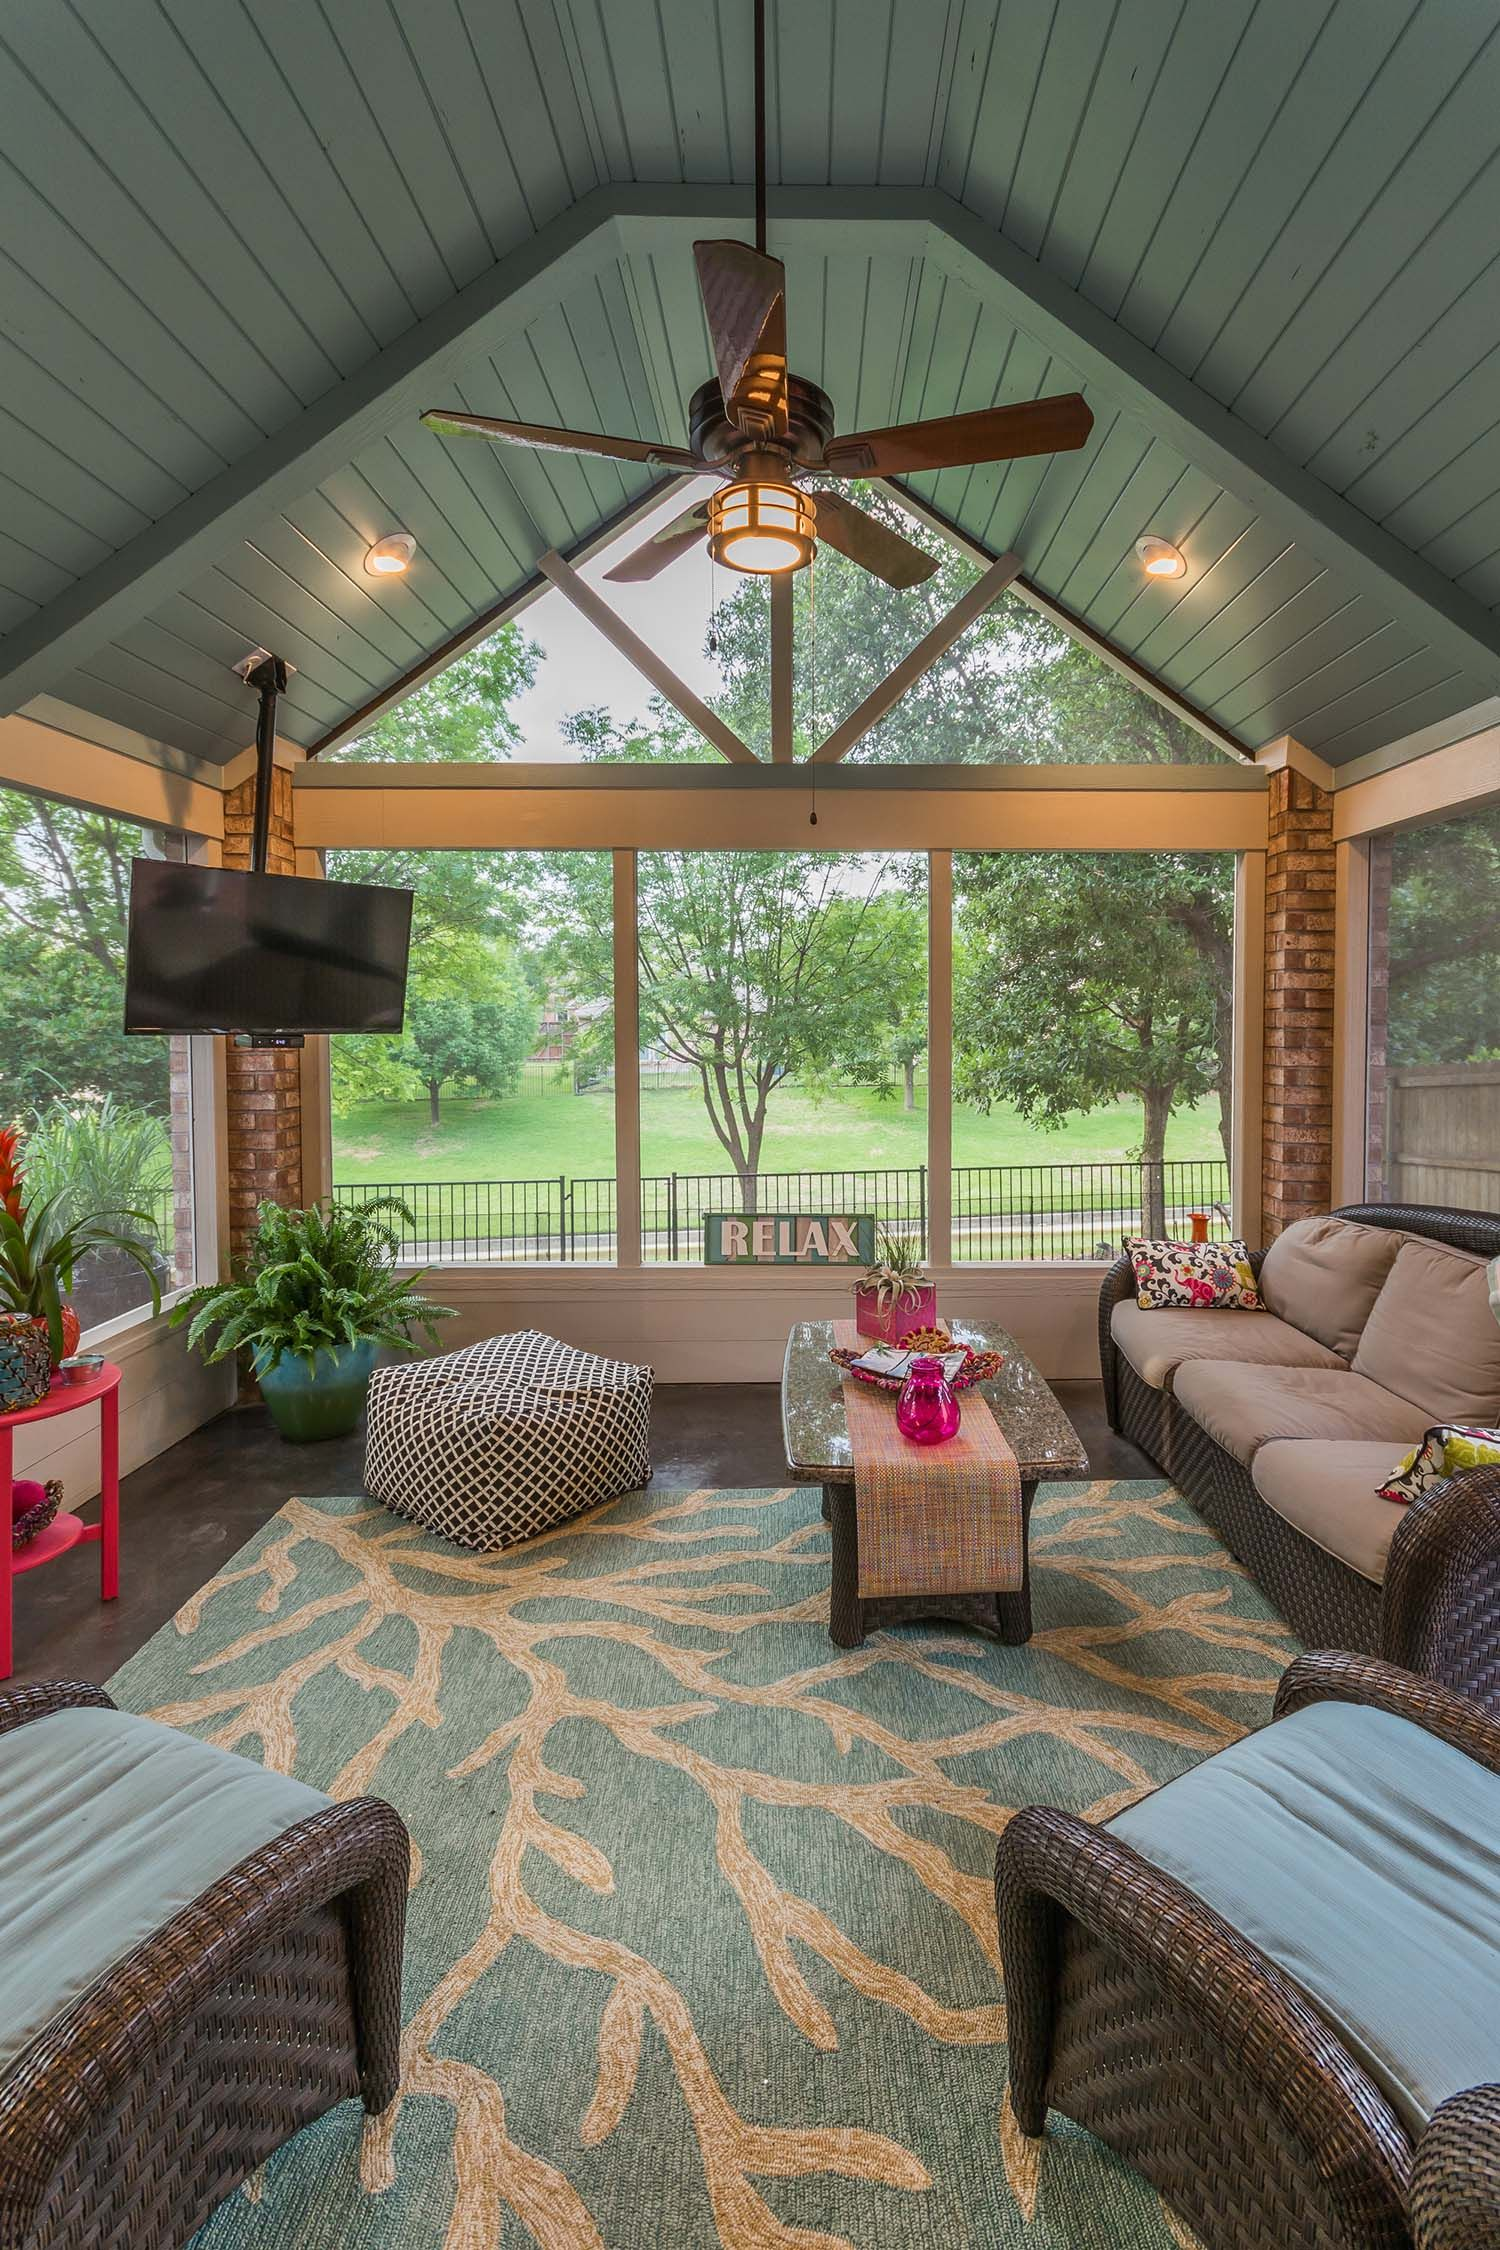 38 Amazingly cozy and relaxing screened porch design ideas   screen     Screened Porch Design Ideas 32 1 Kindesign